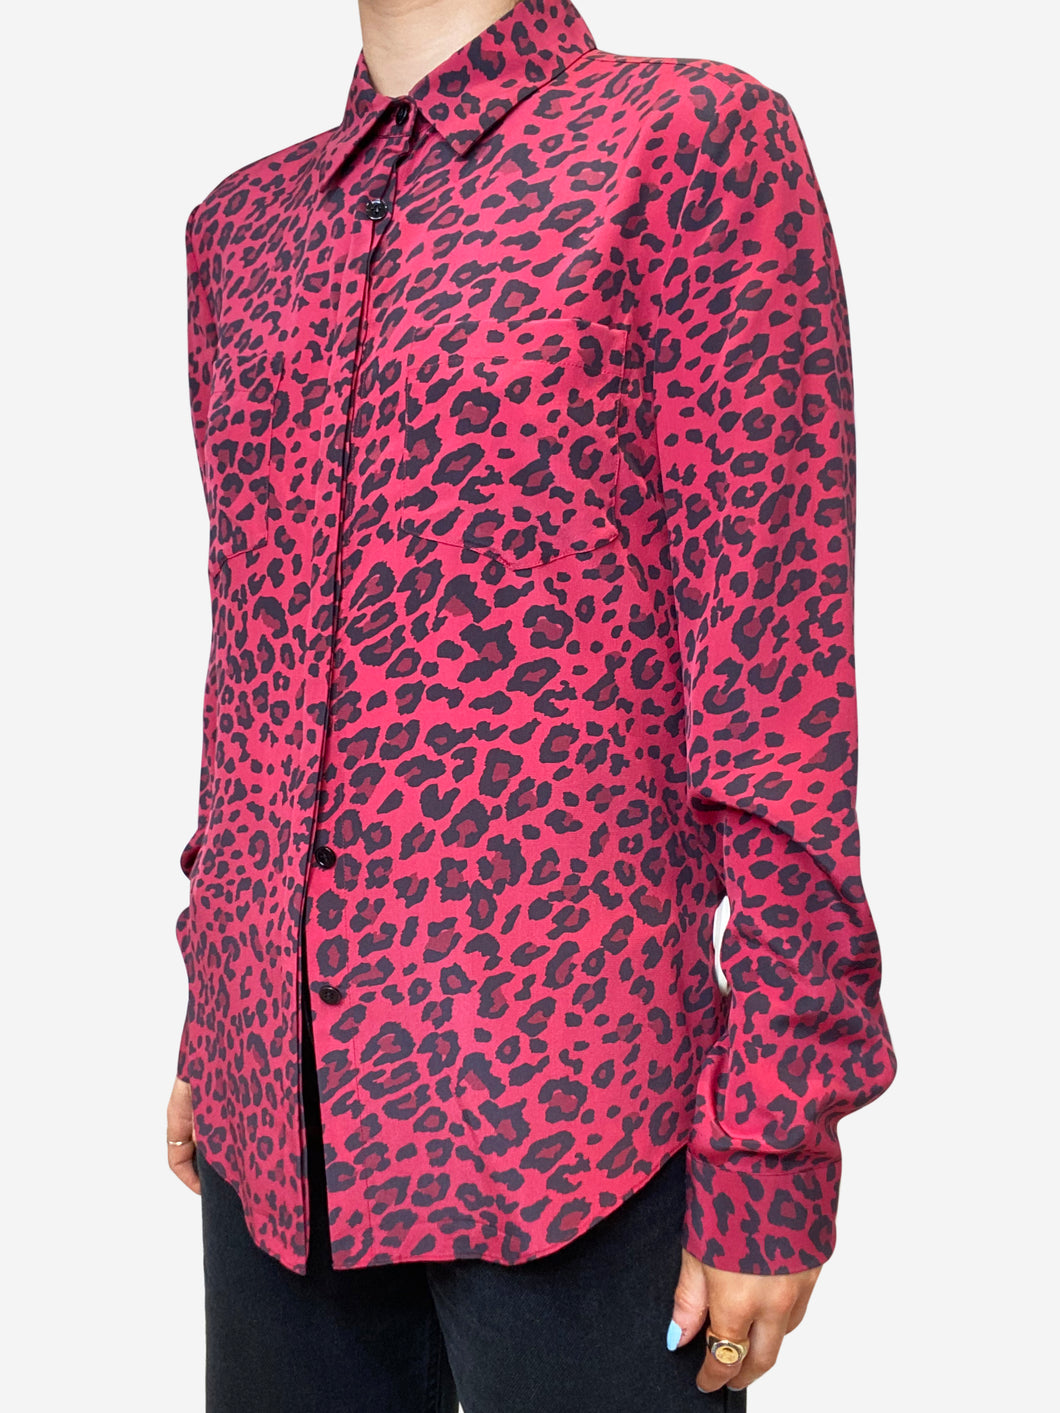 Red & black leopard print blouse - size S